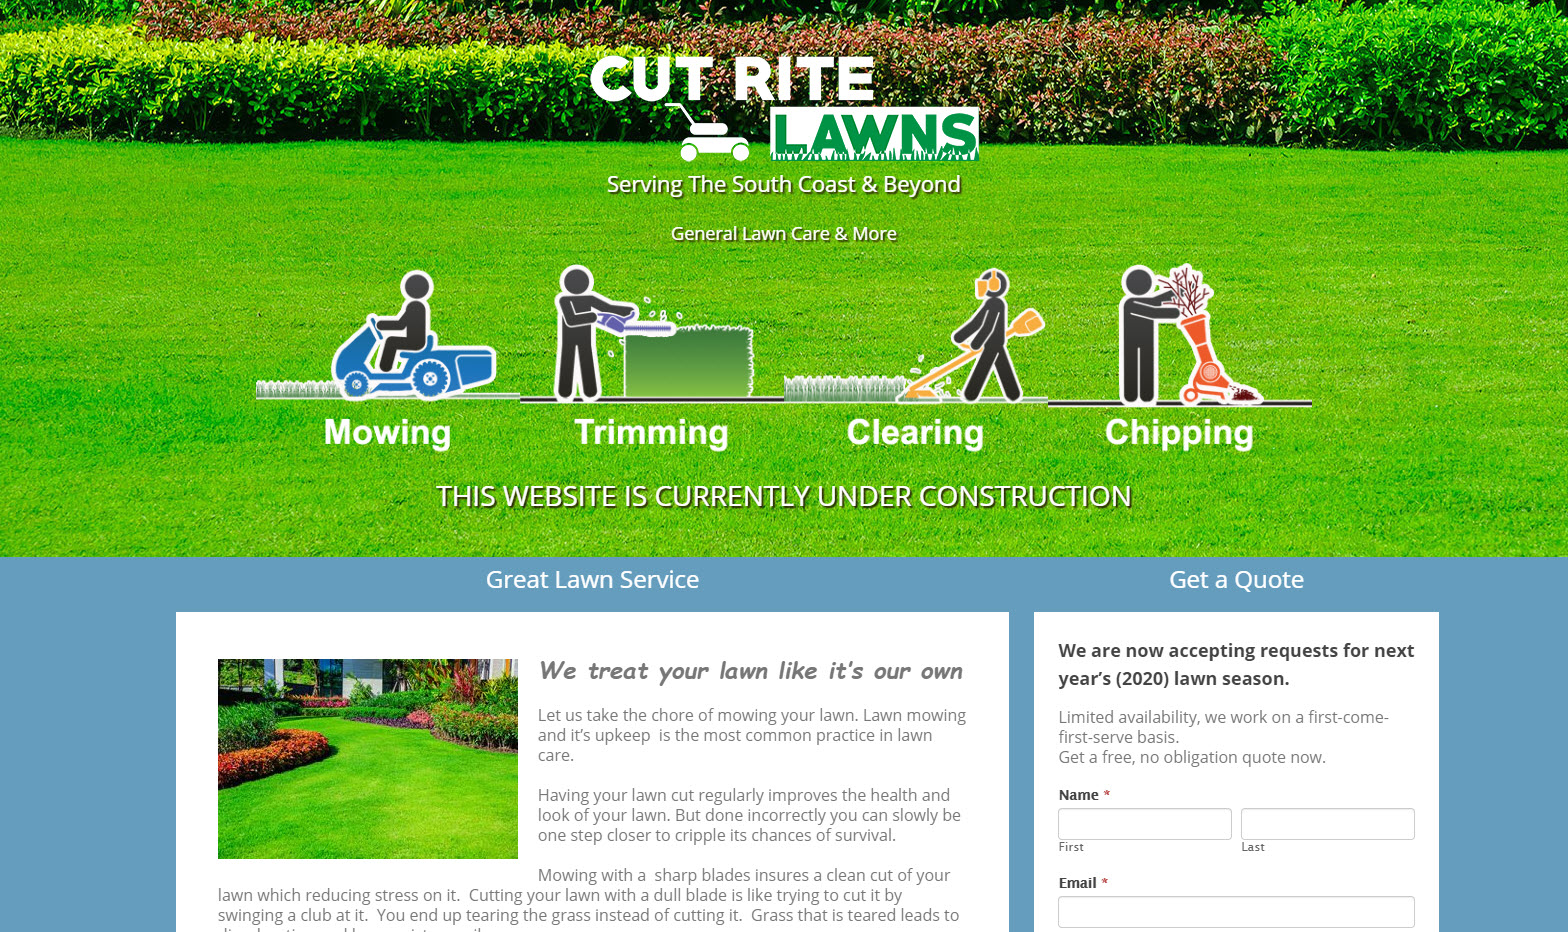 Cut Rite Lawns